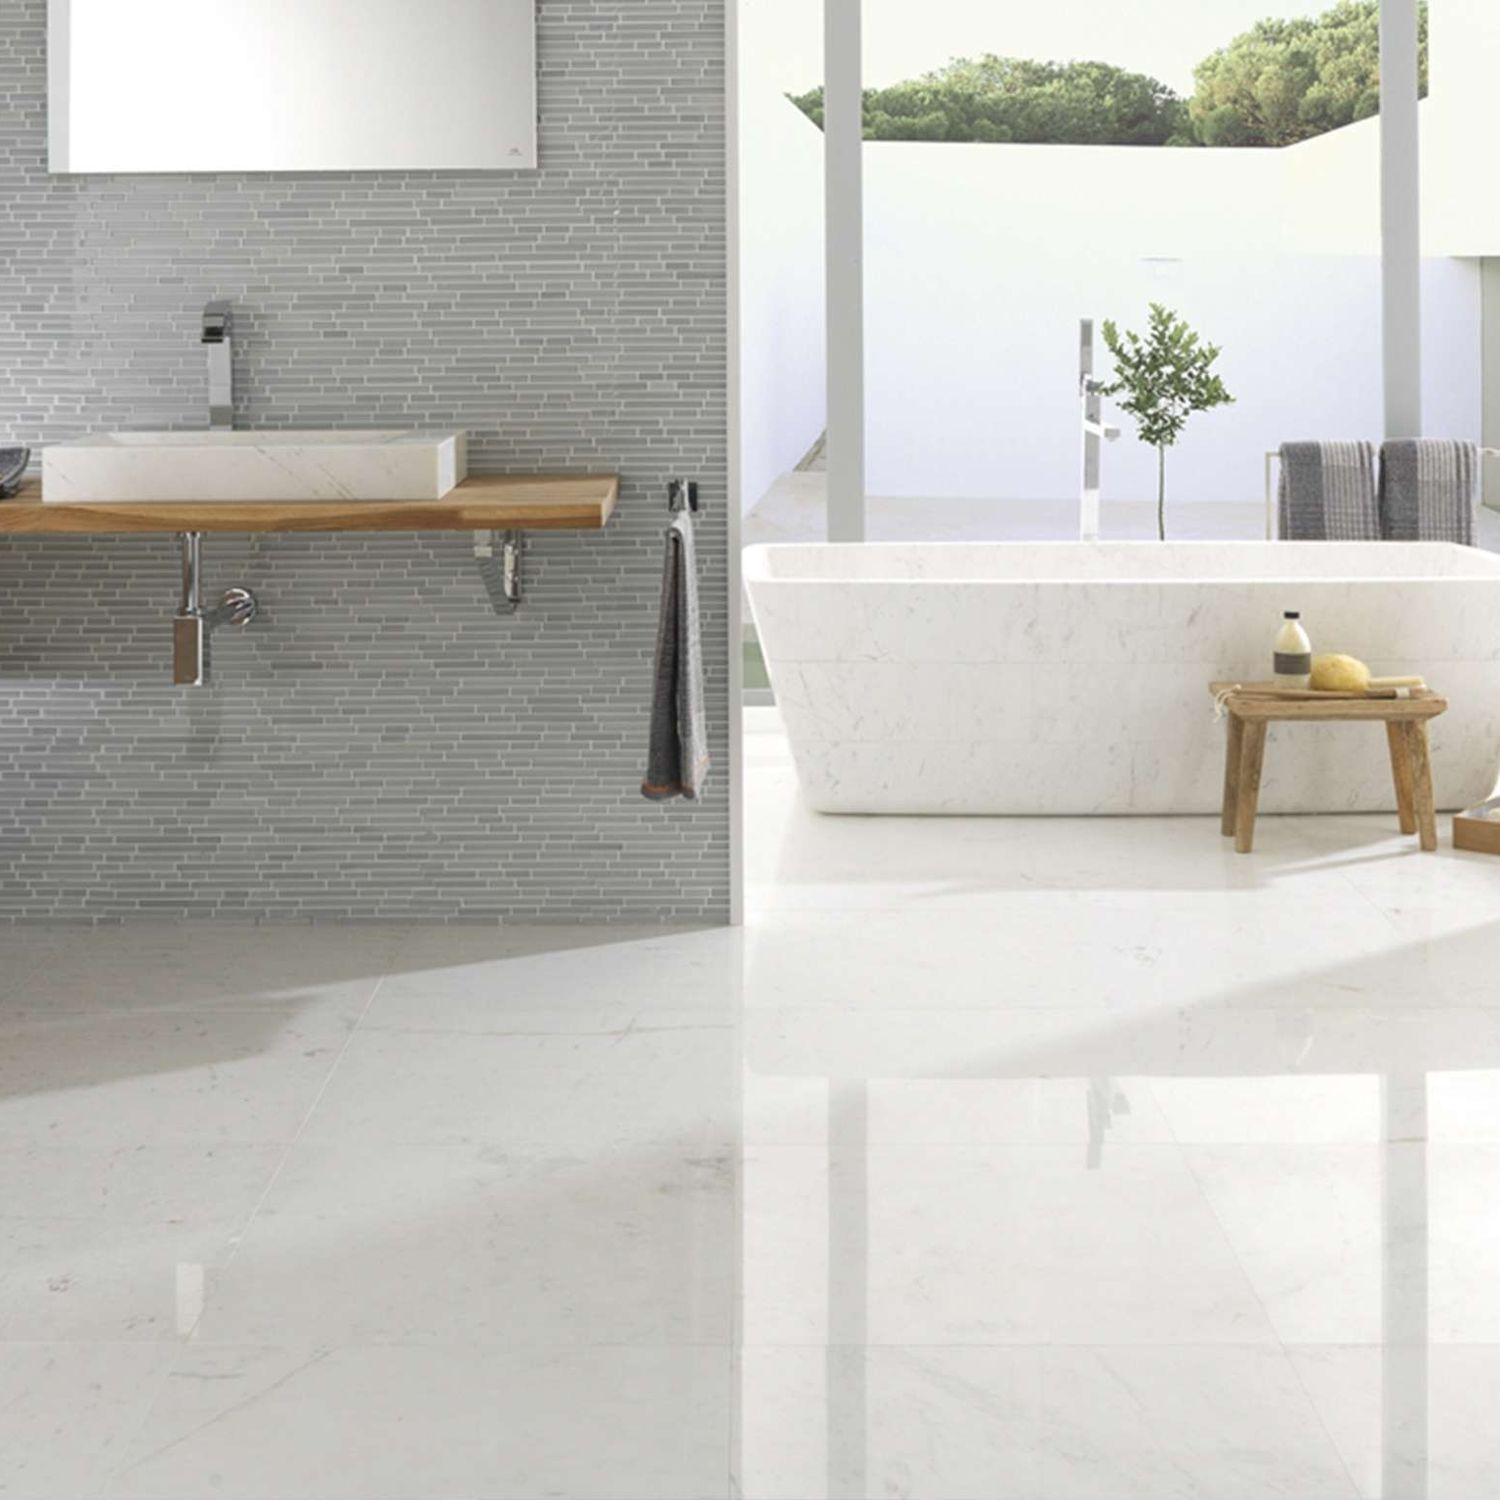 Bathroom tile   floor   marble   polished   PERSIAN WHITE PULIDO. Bathroom tile   floor   marble   polished   PERSIAN WHITE PULIDO